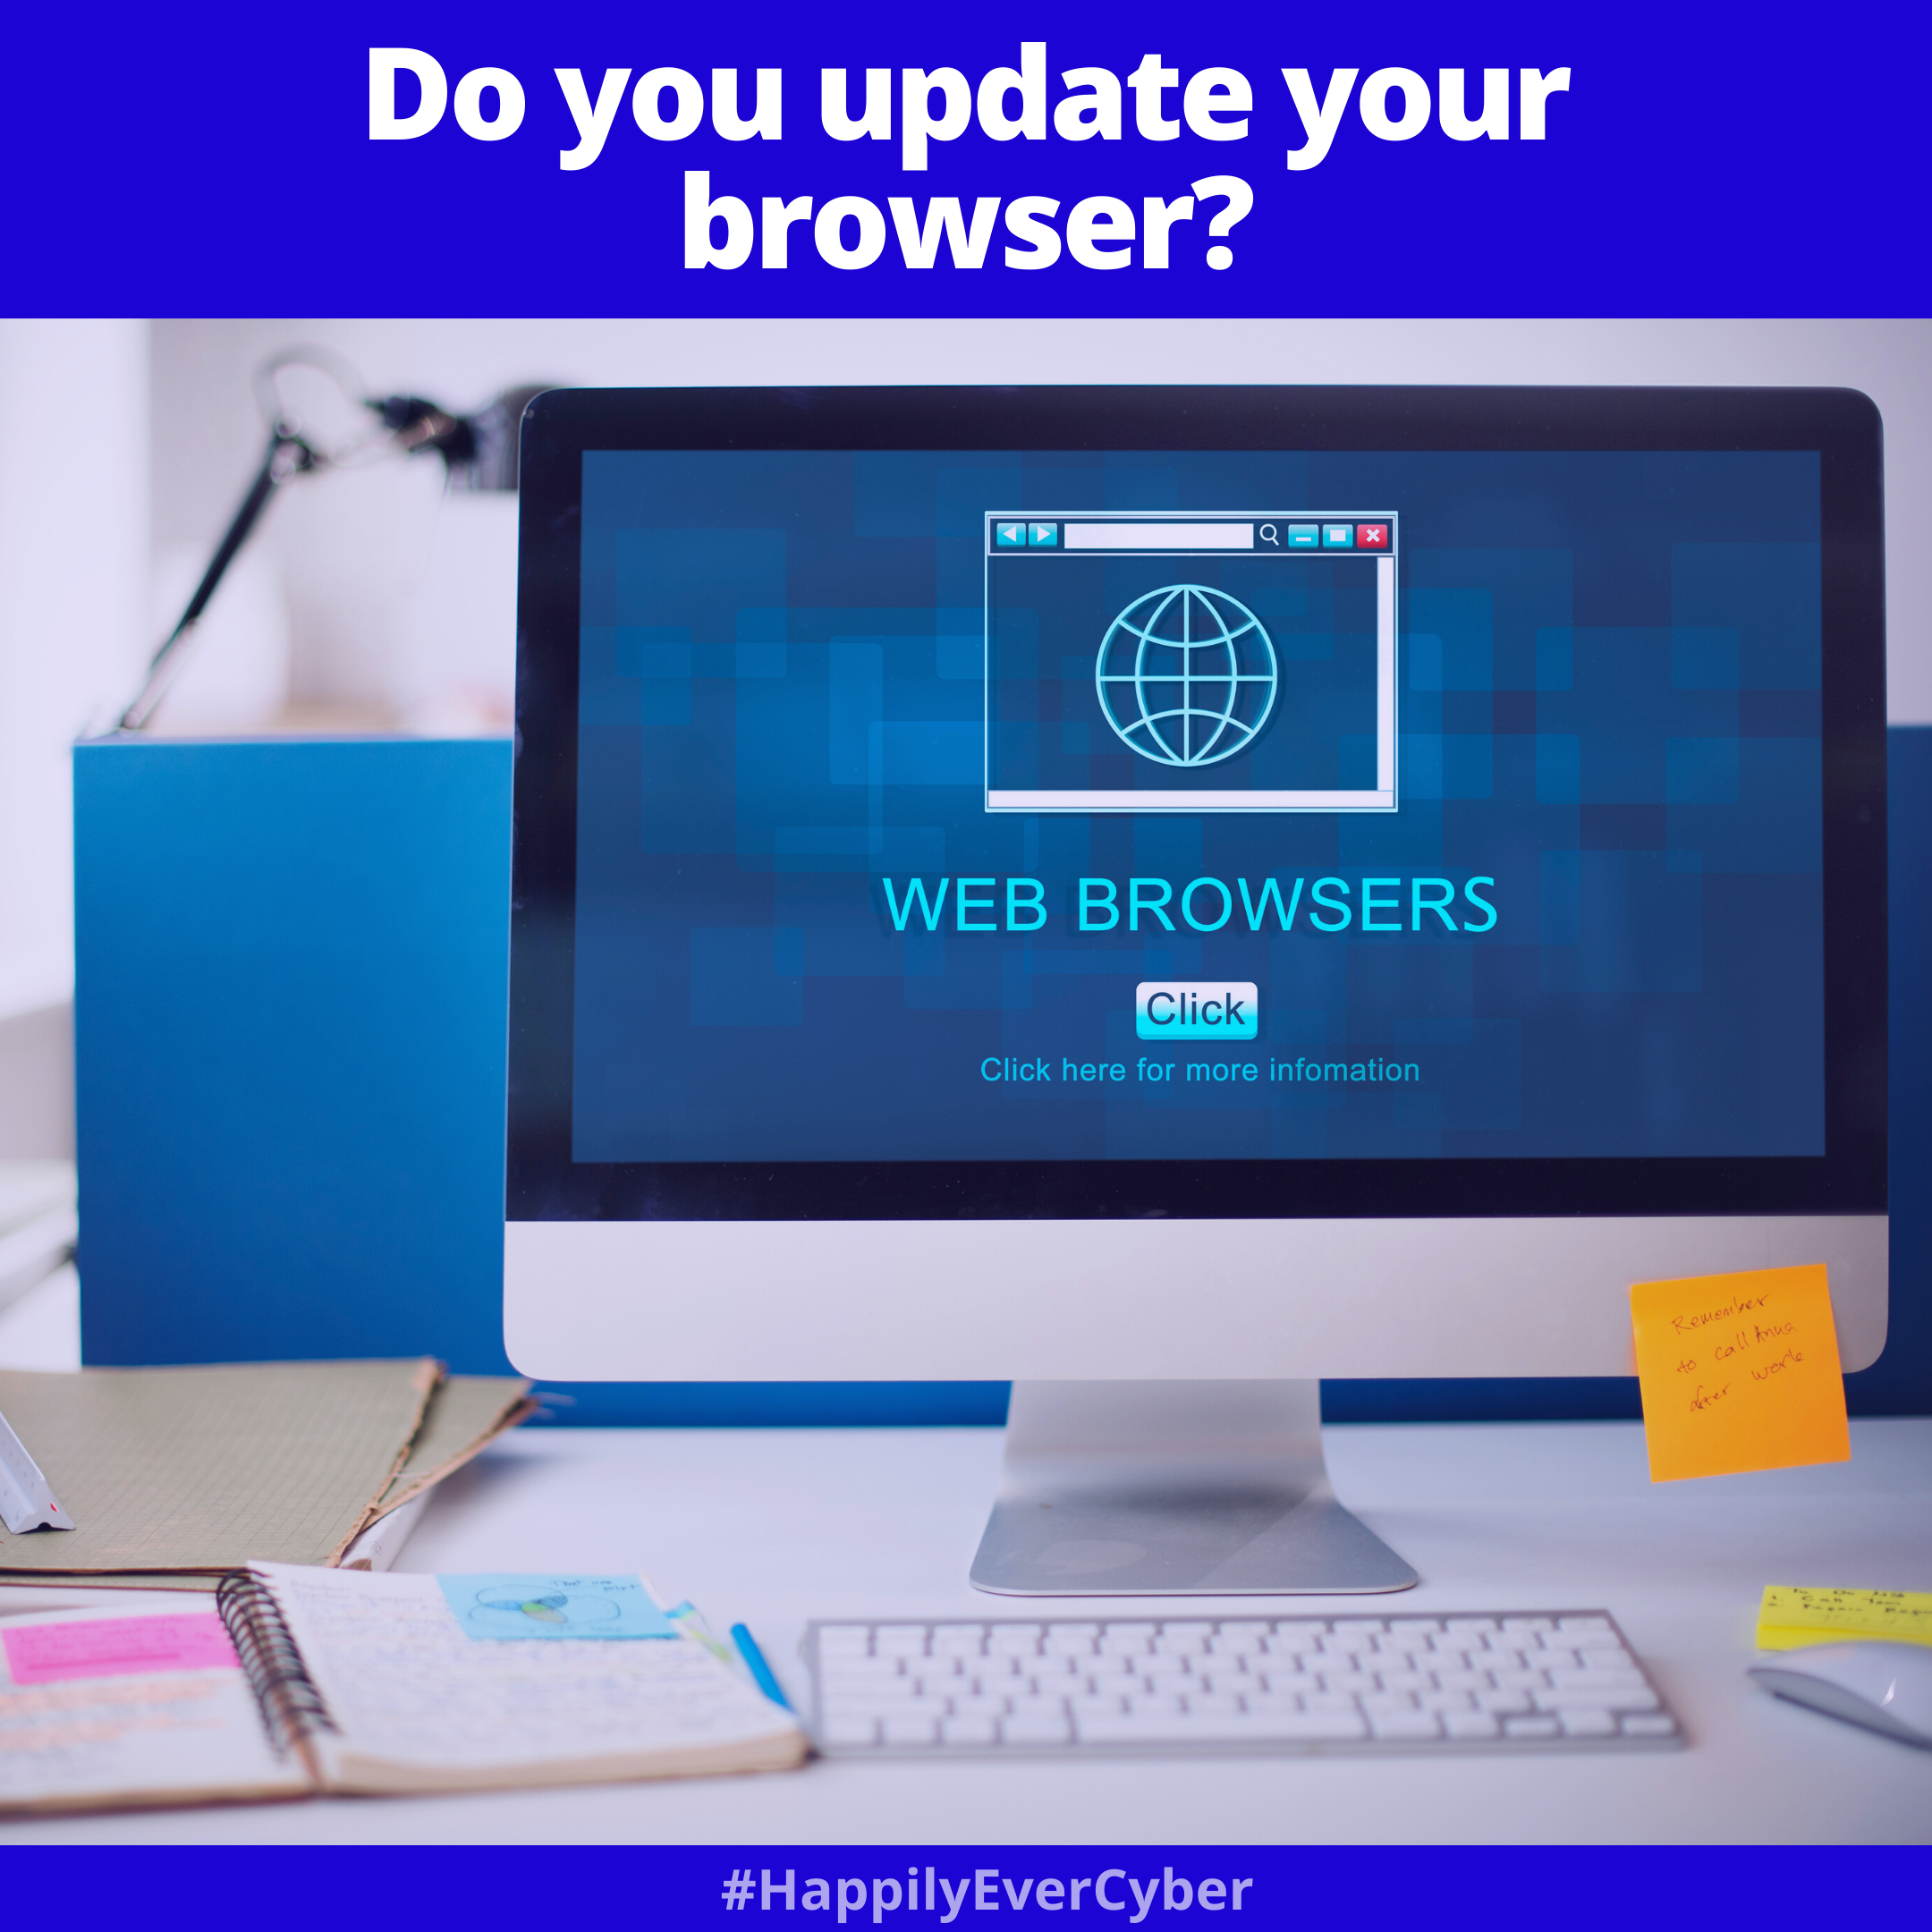 Do you update your browser? cyber security cyber safety protect yourself online Happily Ever Cyber Way2Protect Sandra Estok